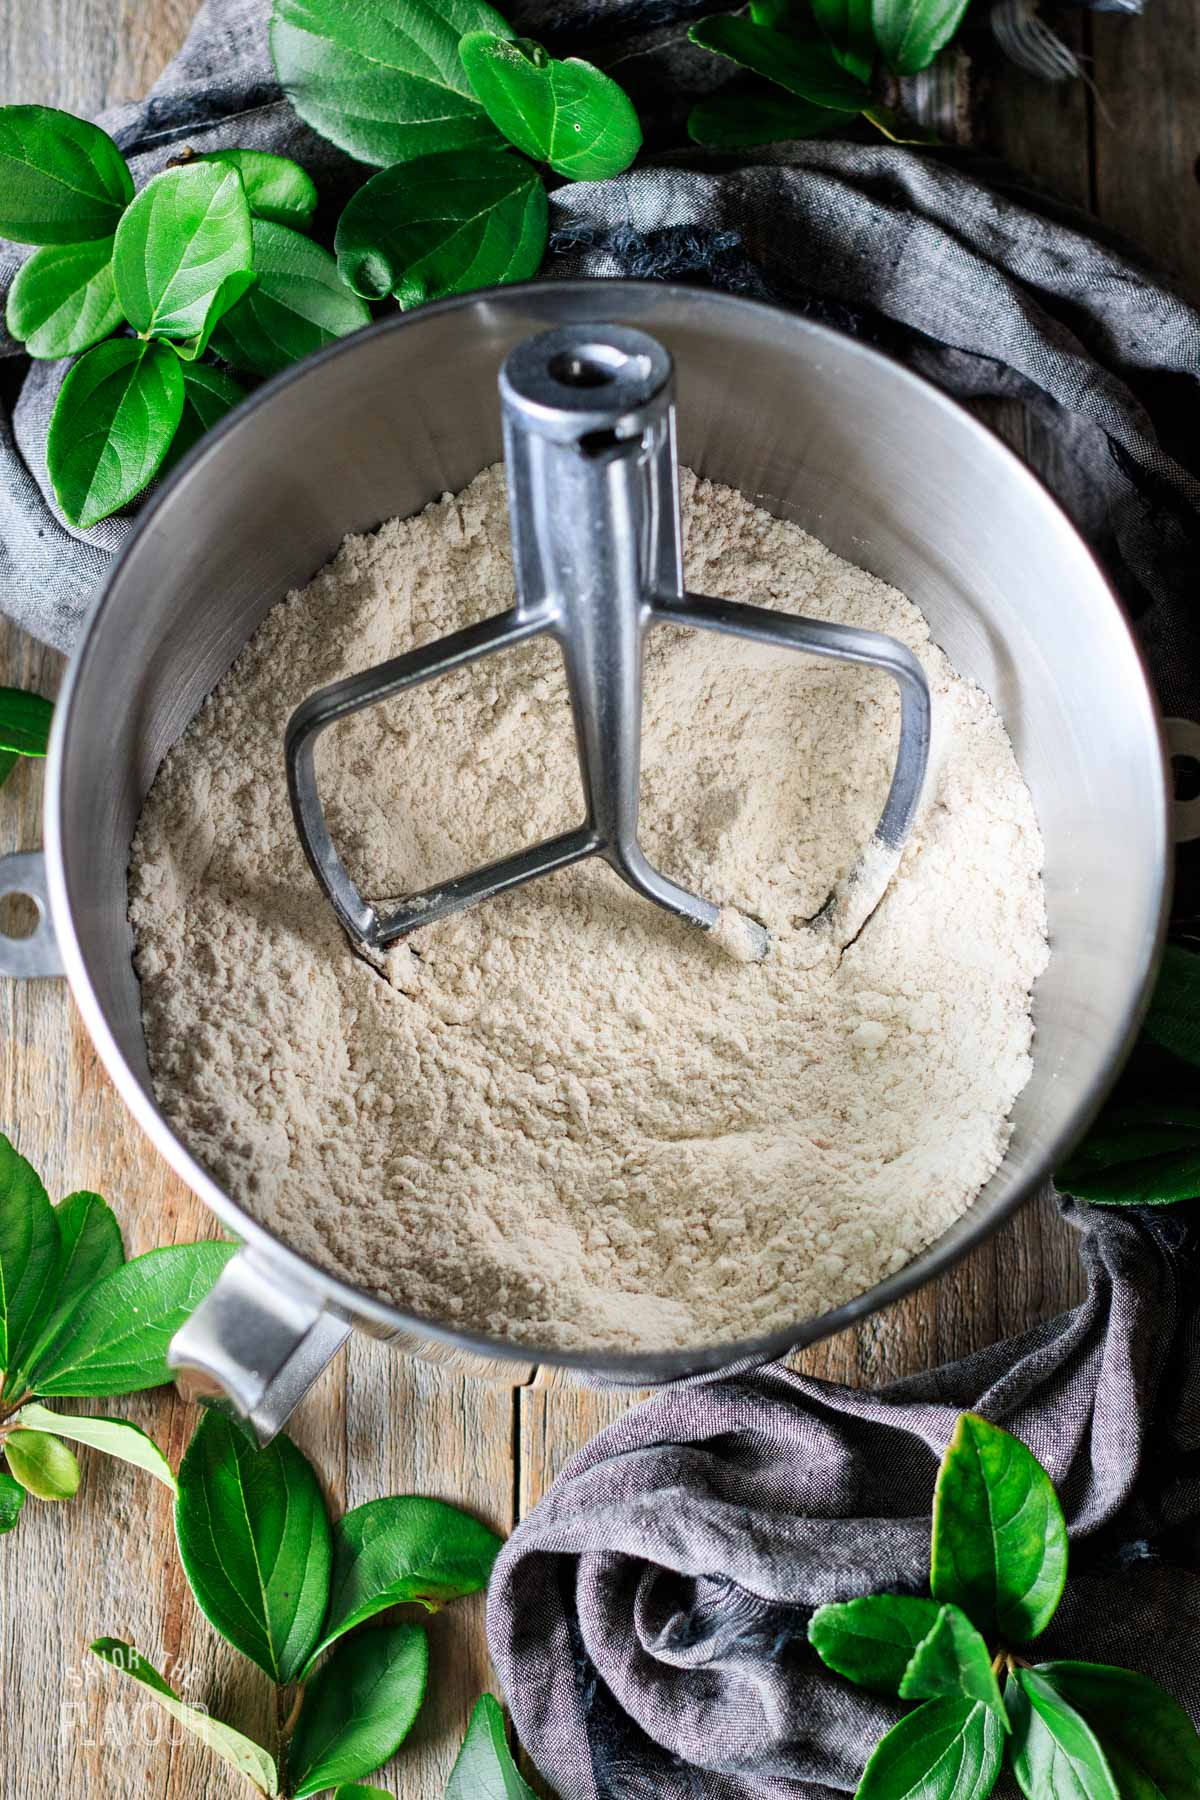 flour mixture in a stand mixer bowl with the paddle attachment